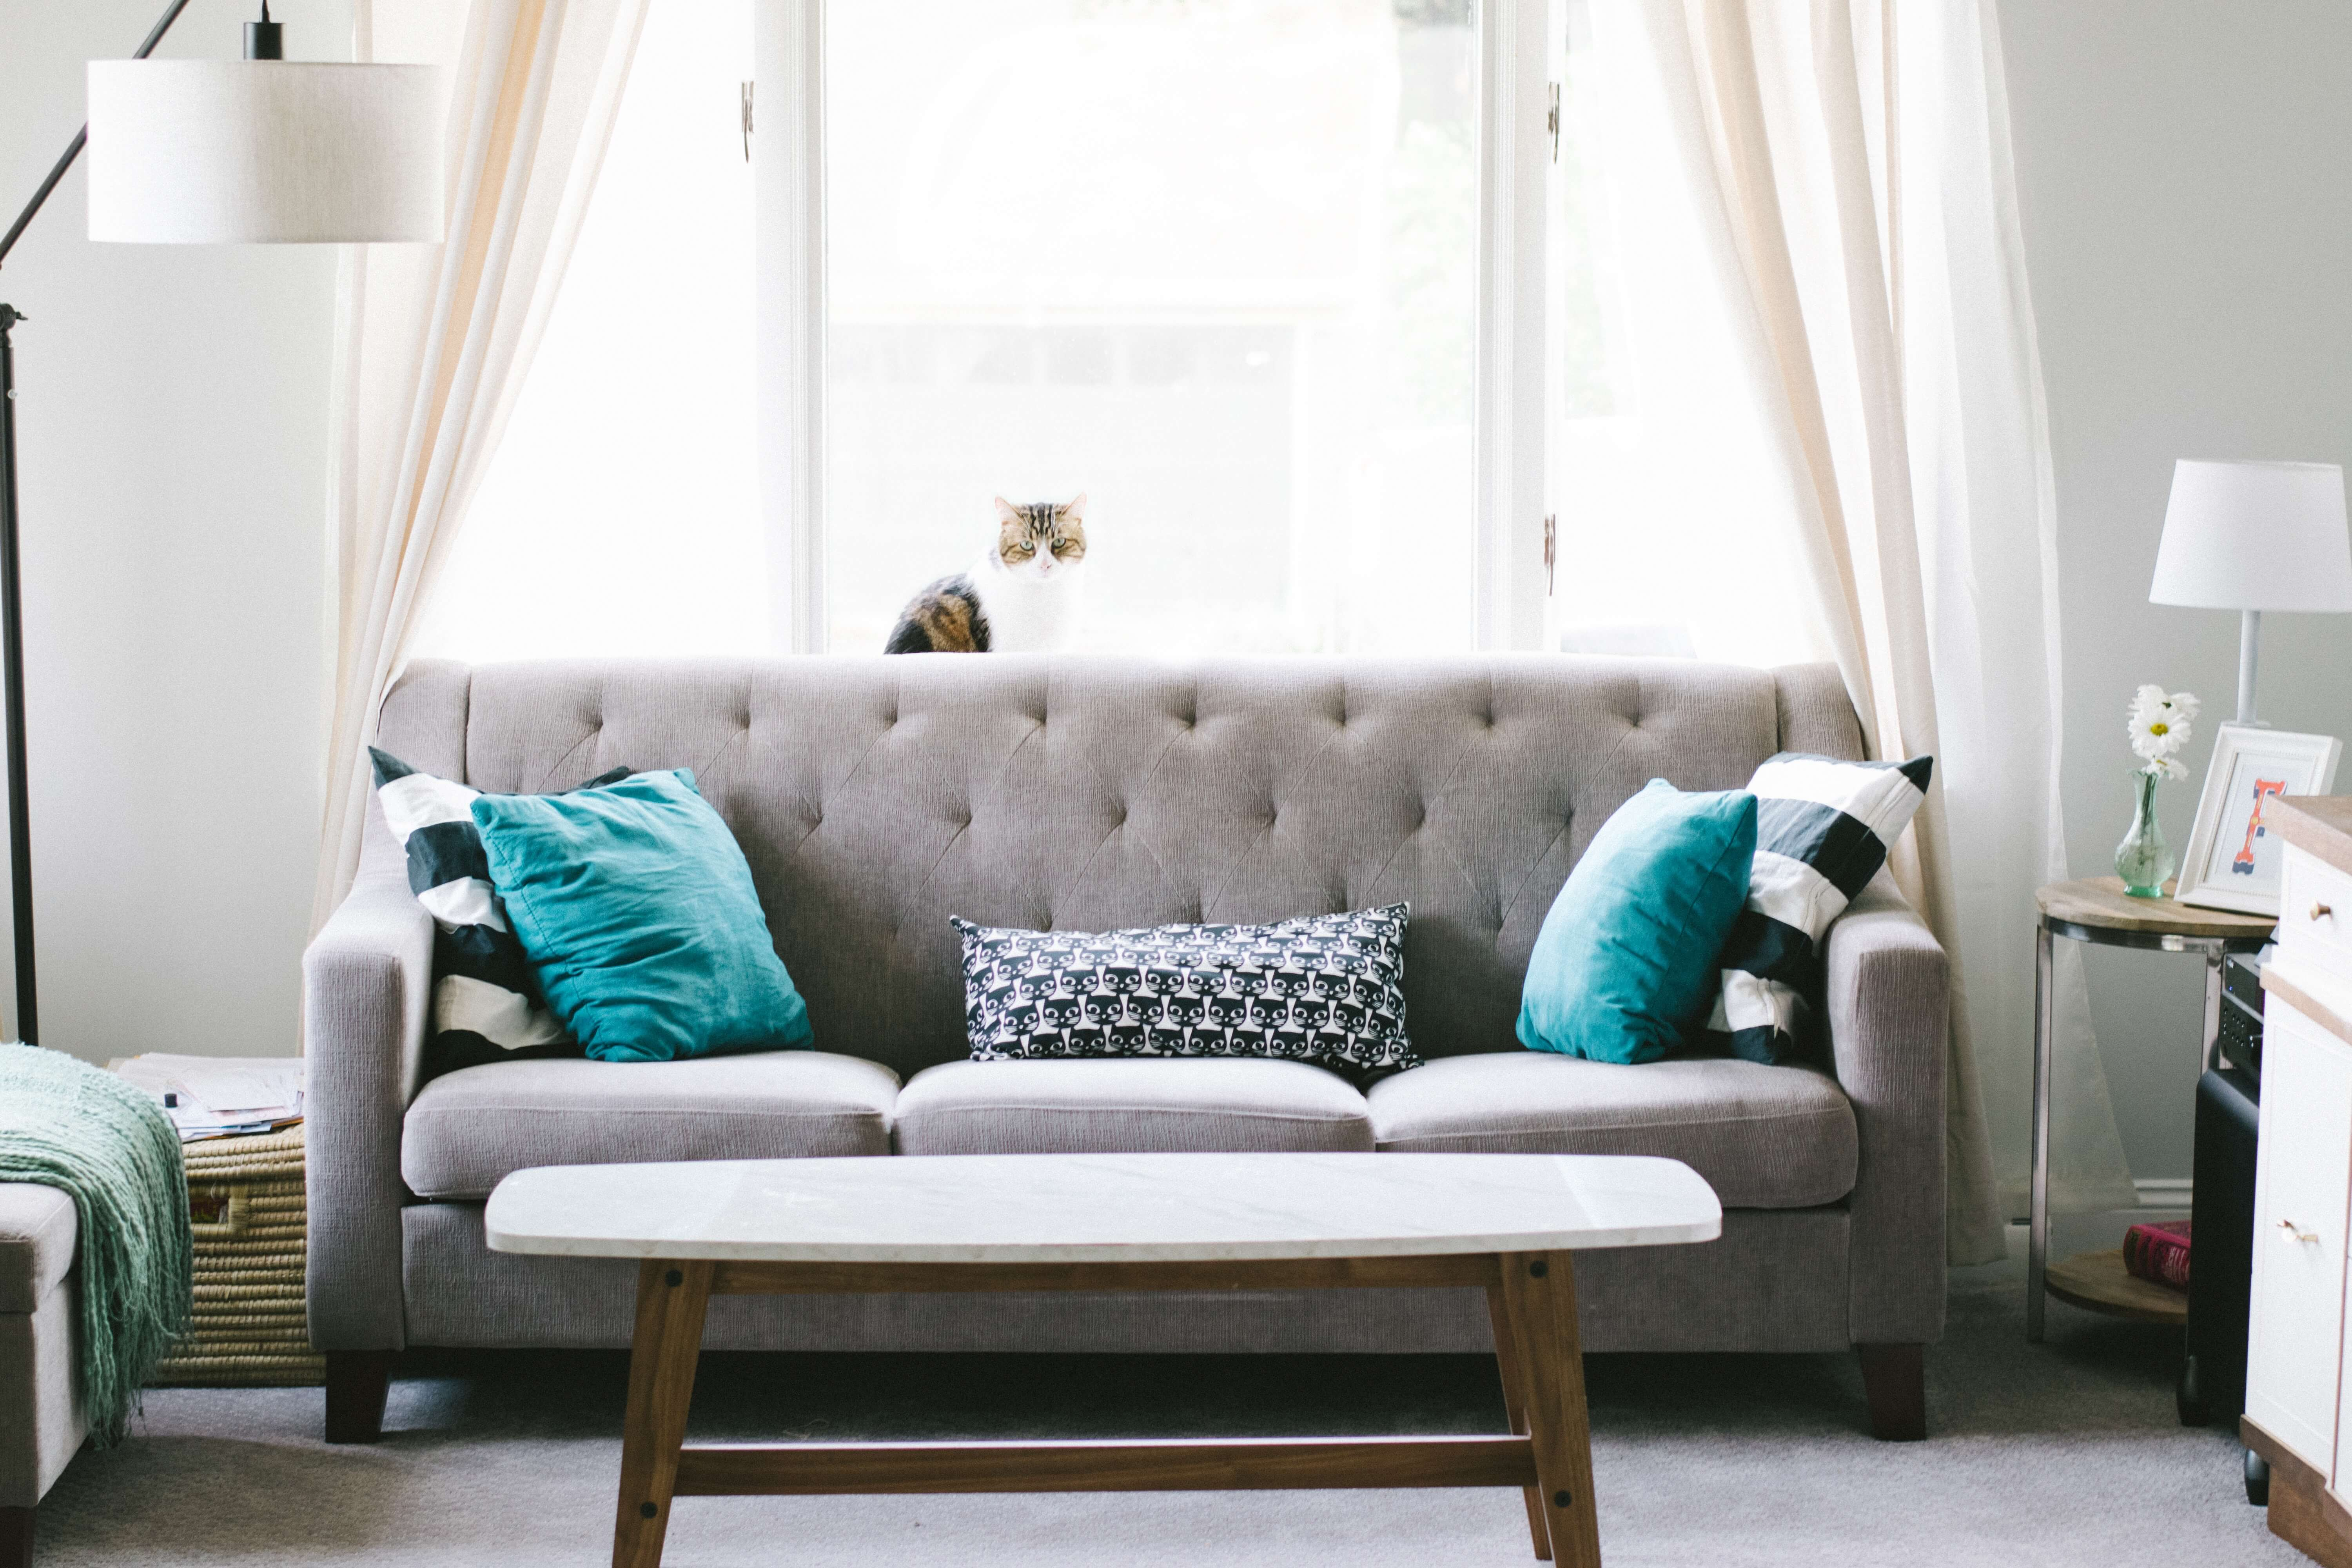 6 Helpful Home Cleaning Tips | Chem-Dry of Santa Clarita Valley